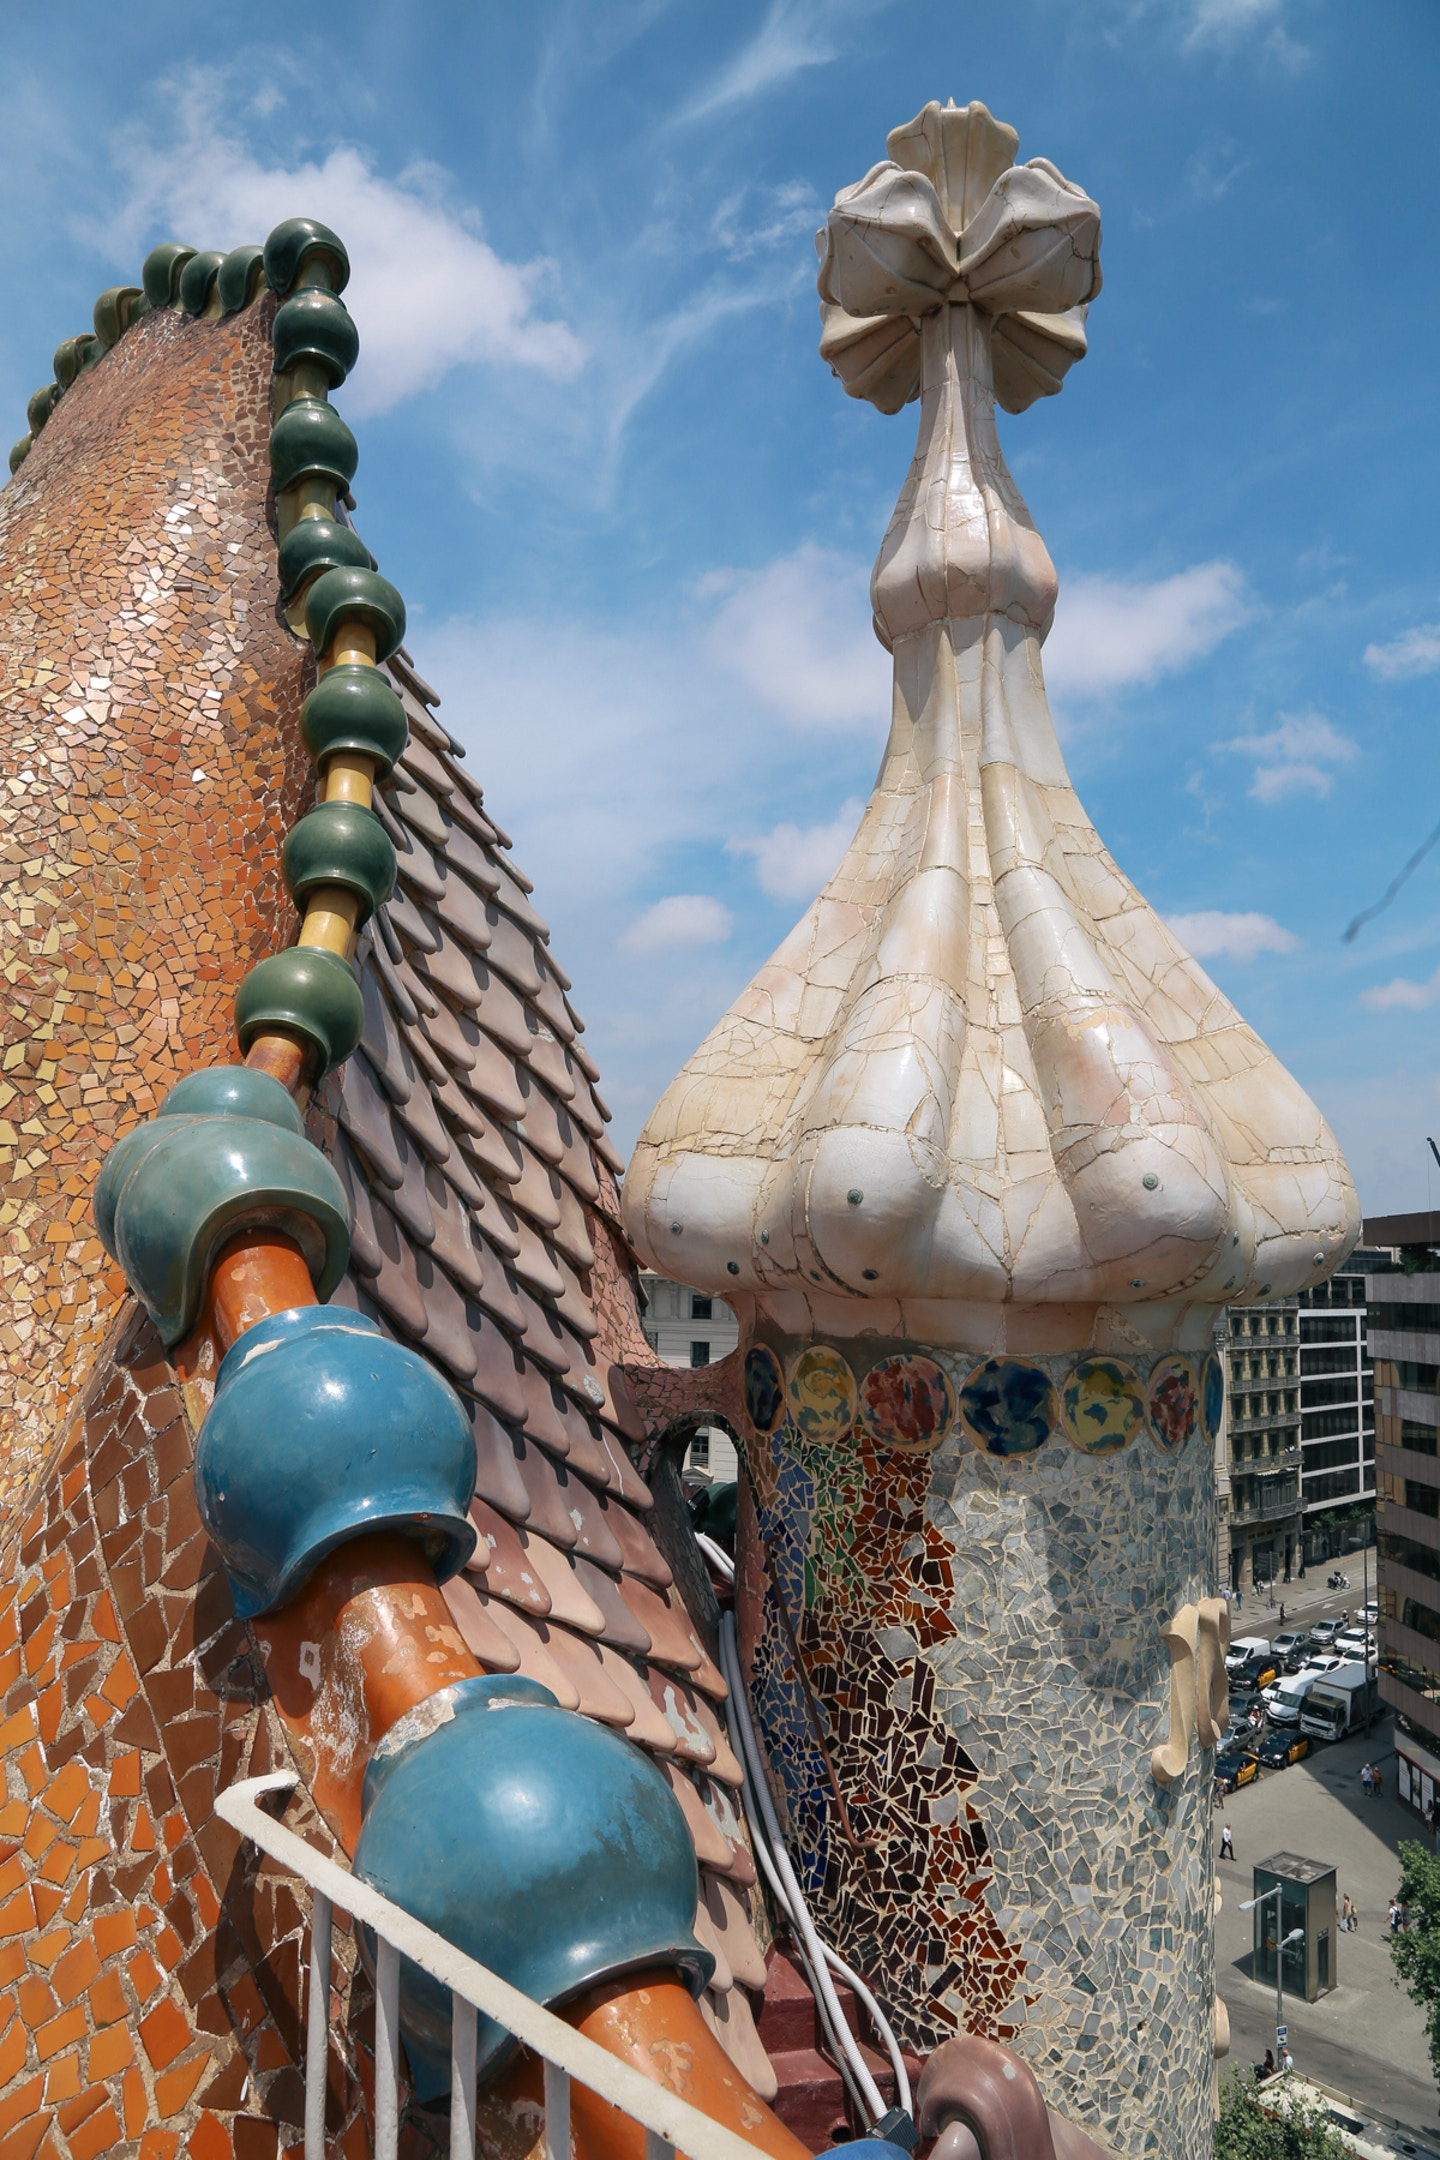 Travel Guide to Casa Battlo